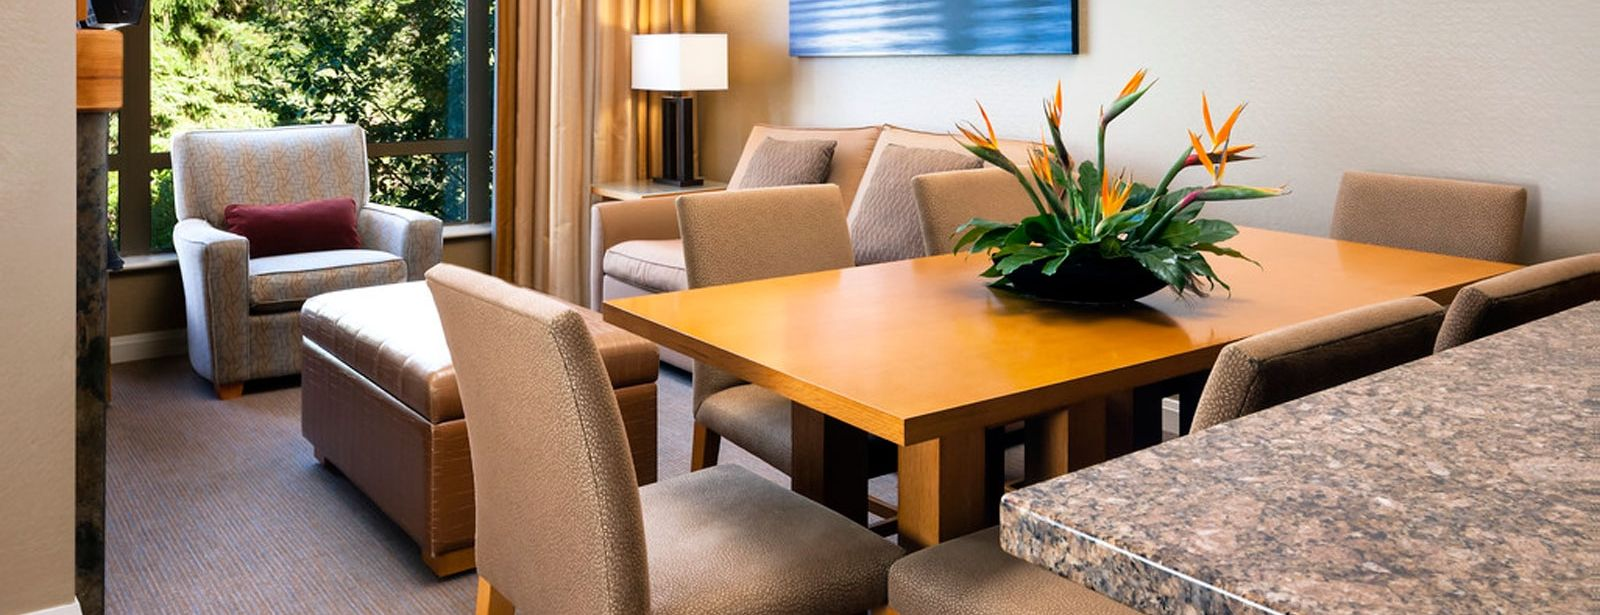 The Westin Resort & Spa, Whistler - Penthouse Mountain Suites